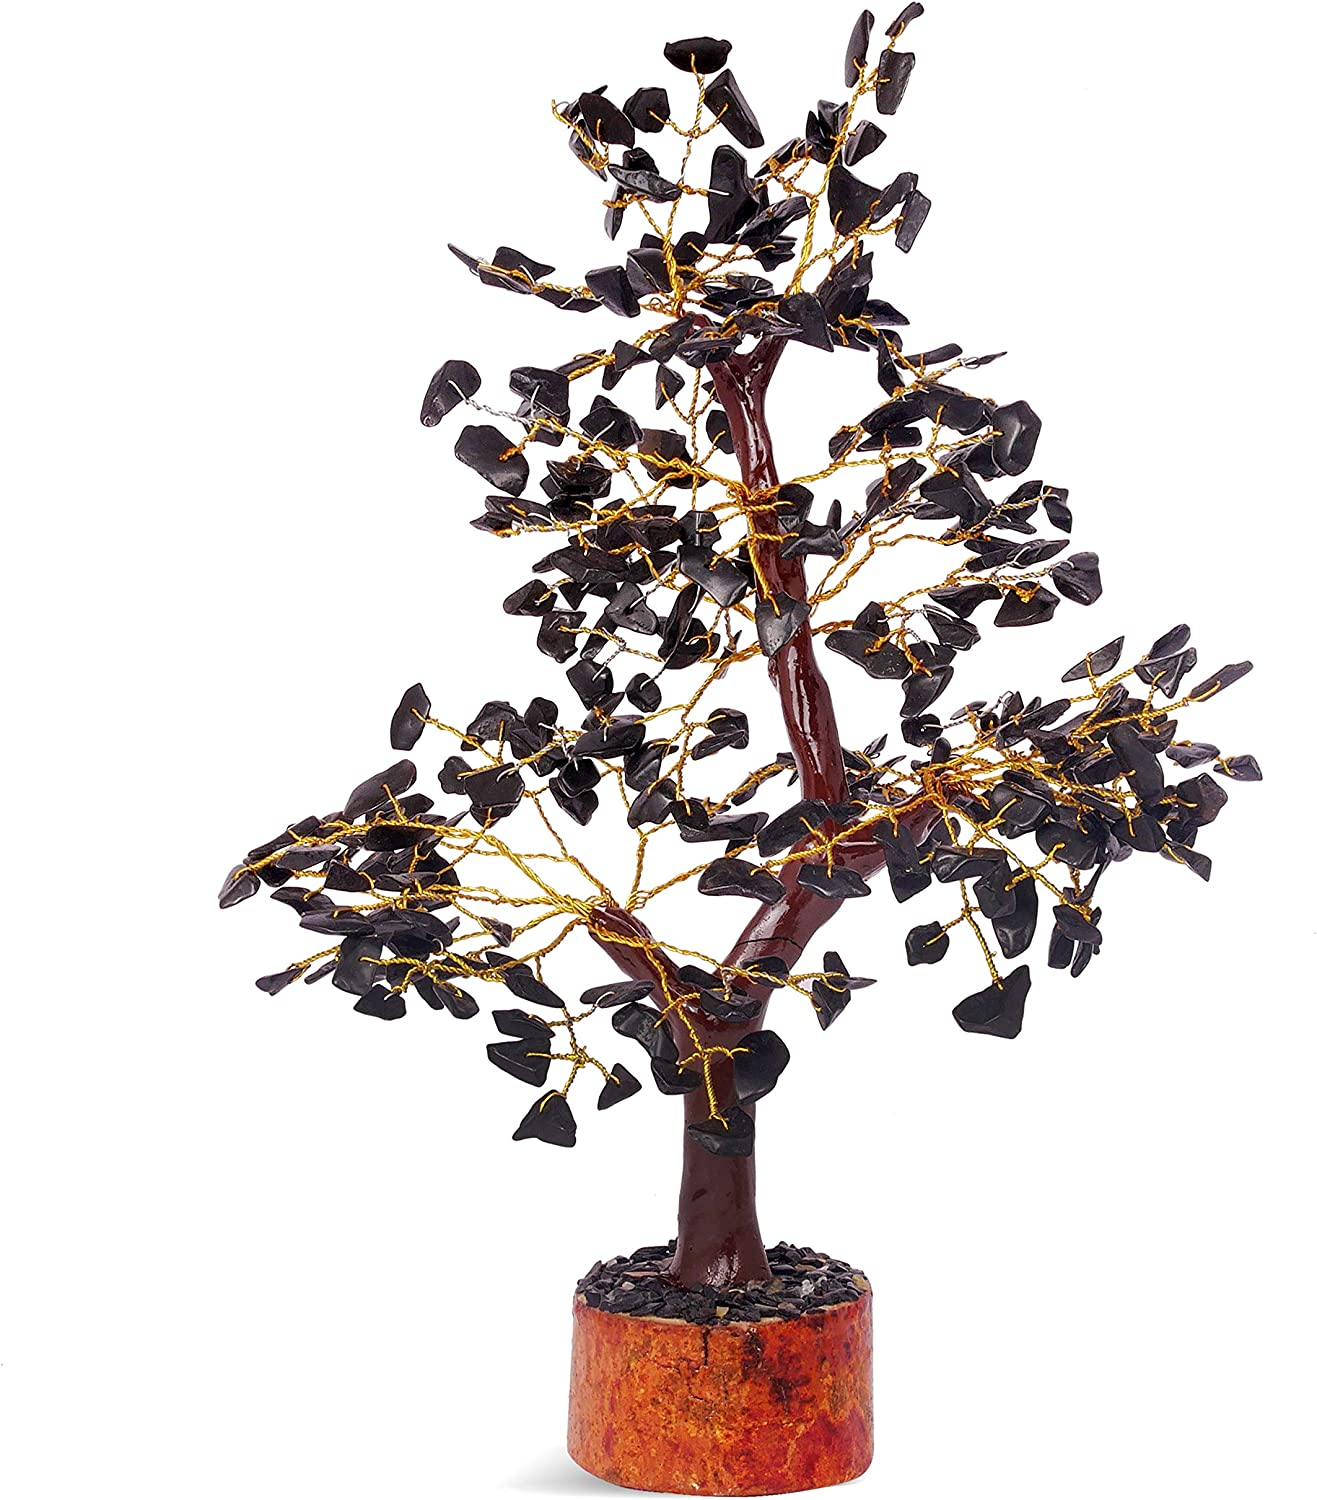 FASHIONZAADI Black Tourmaline Crystal Tree Natural Bonsai Gemstone Money Trees Good Luck Home Office Table Décor Crystals Cleansing 10-12 inch (Golden Wire)